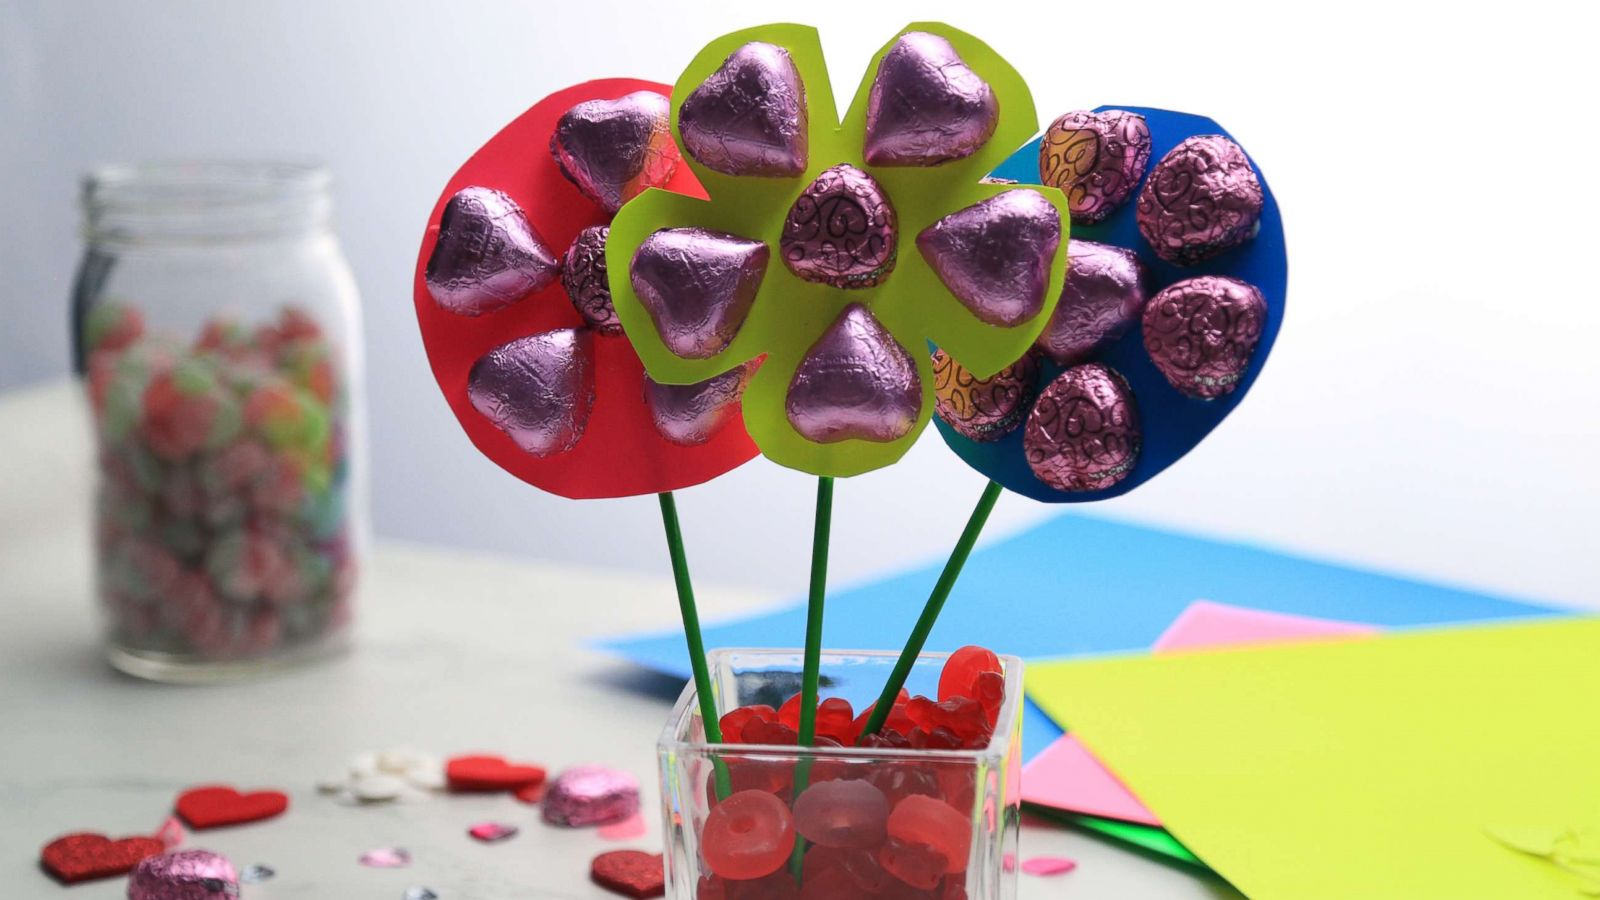 This Diy Chocolate Bouquet Is The Perfect Valentine S Day Gift For Your Sweetie Gma